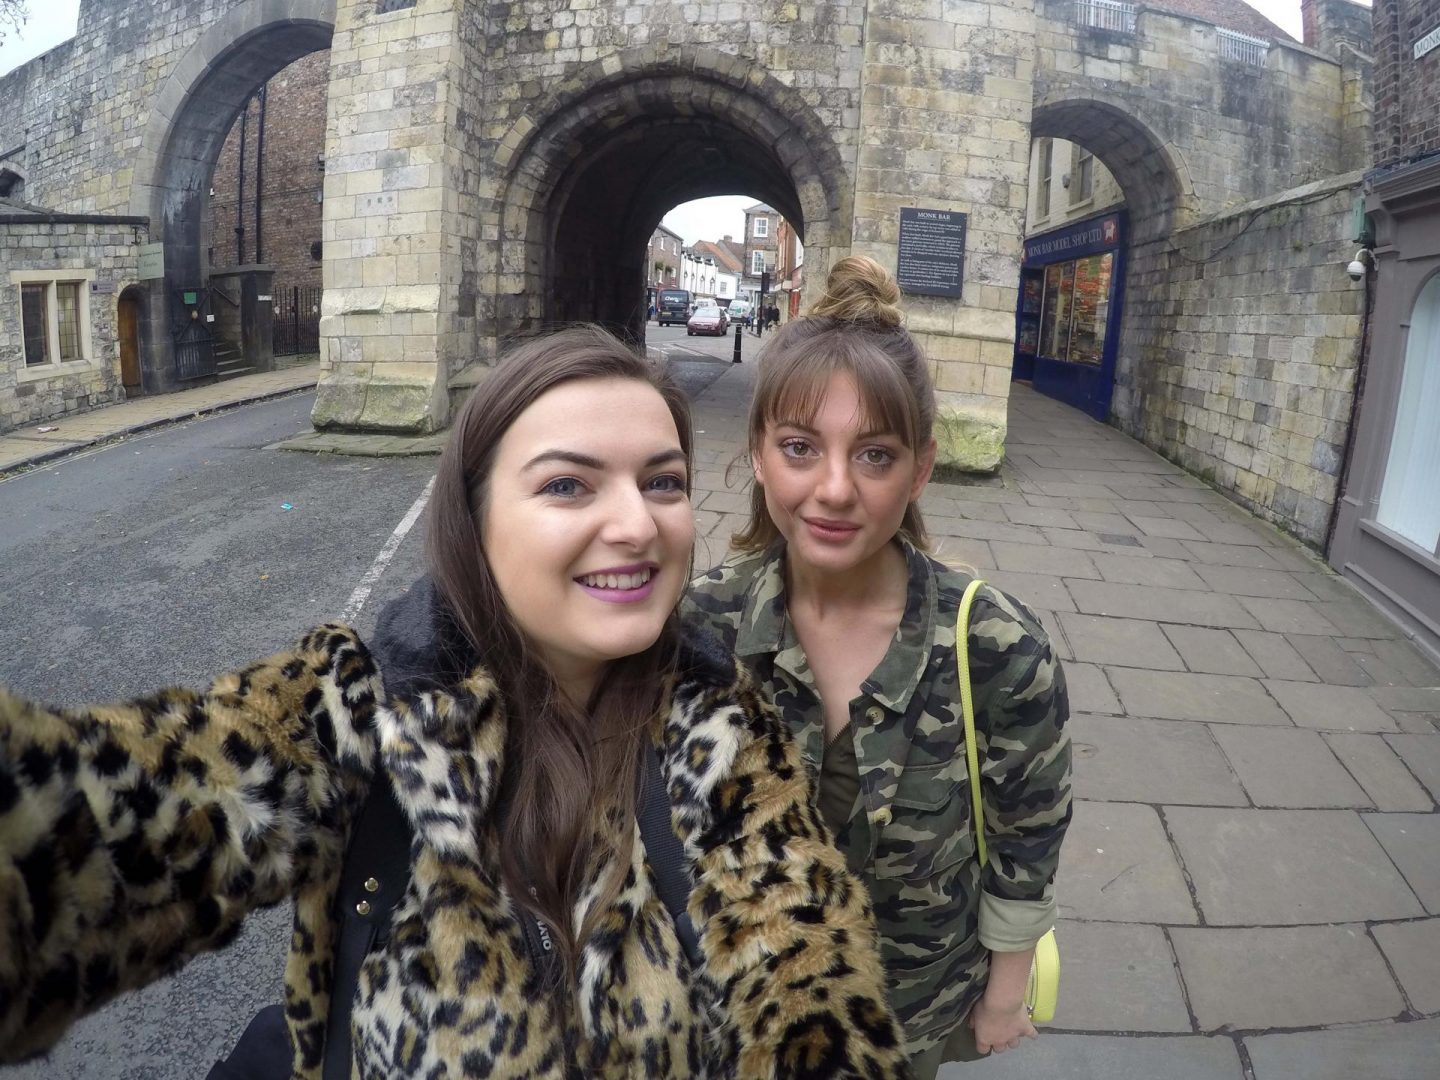 city-adventure-in-york-selfie-trail-at-monkbar-rachel-nicole-uk-blogger